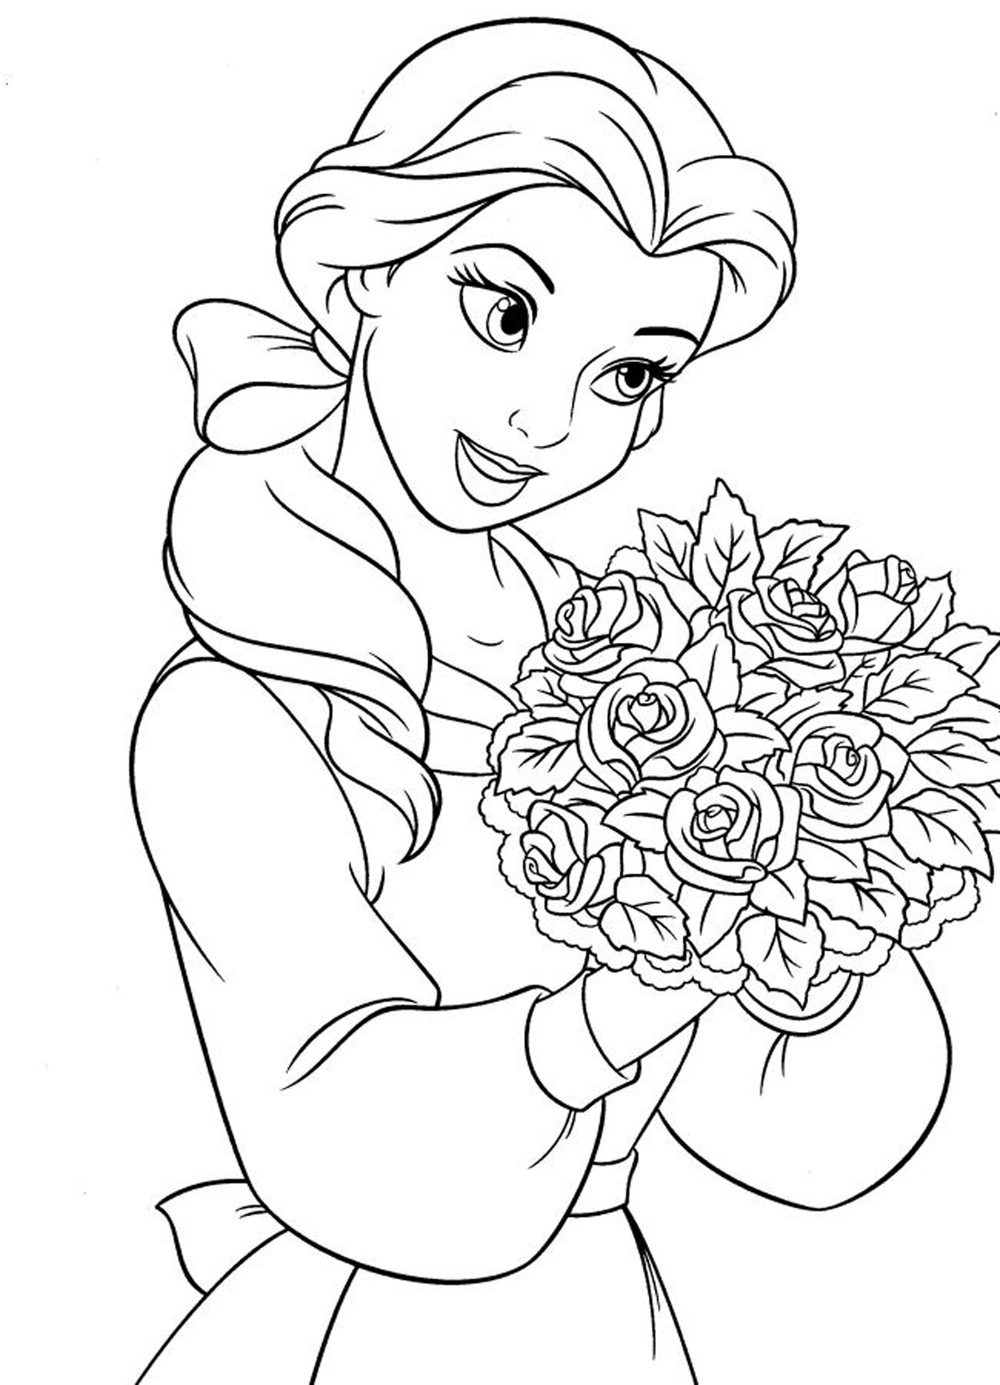 disney coloring pages online - disney princess coloring pages